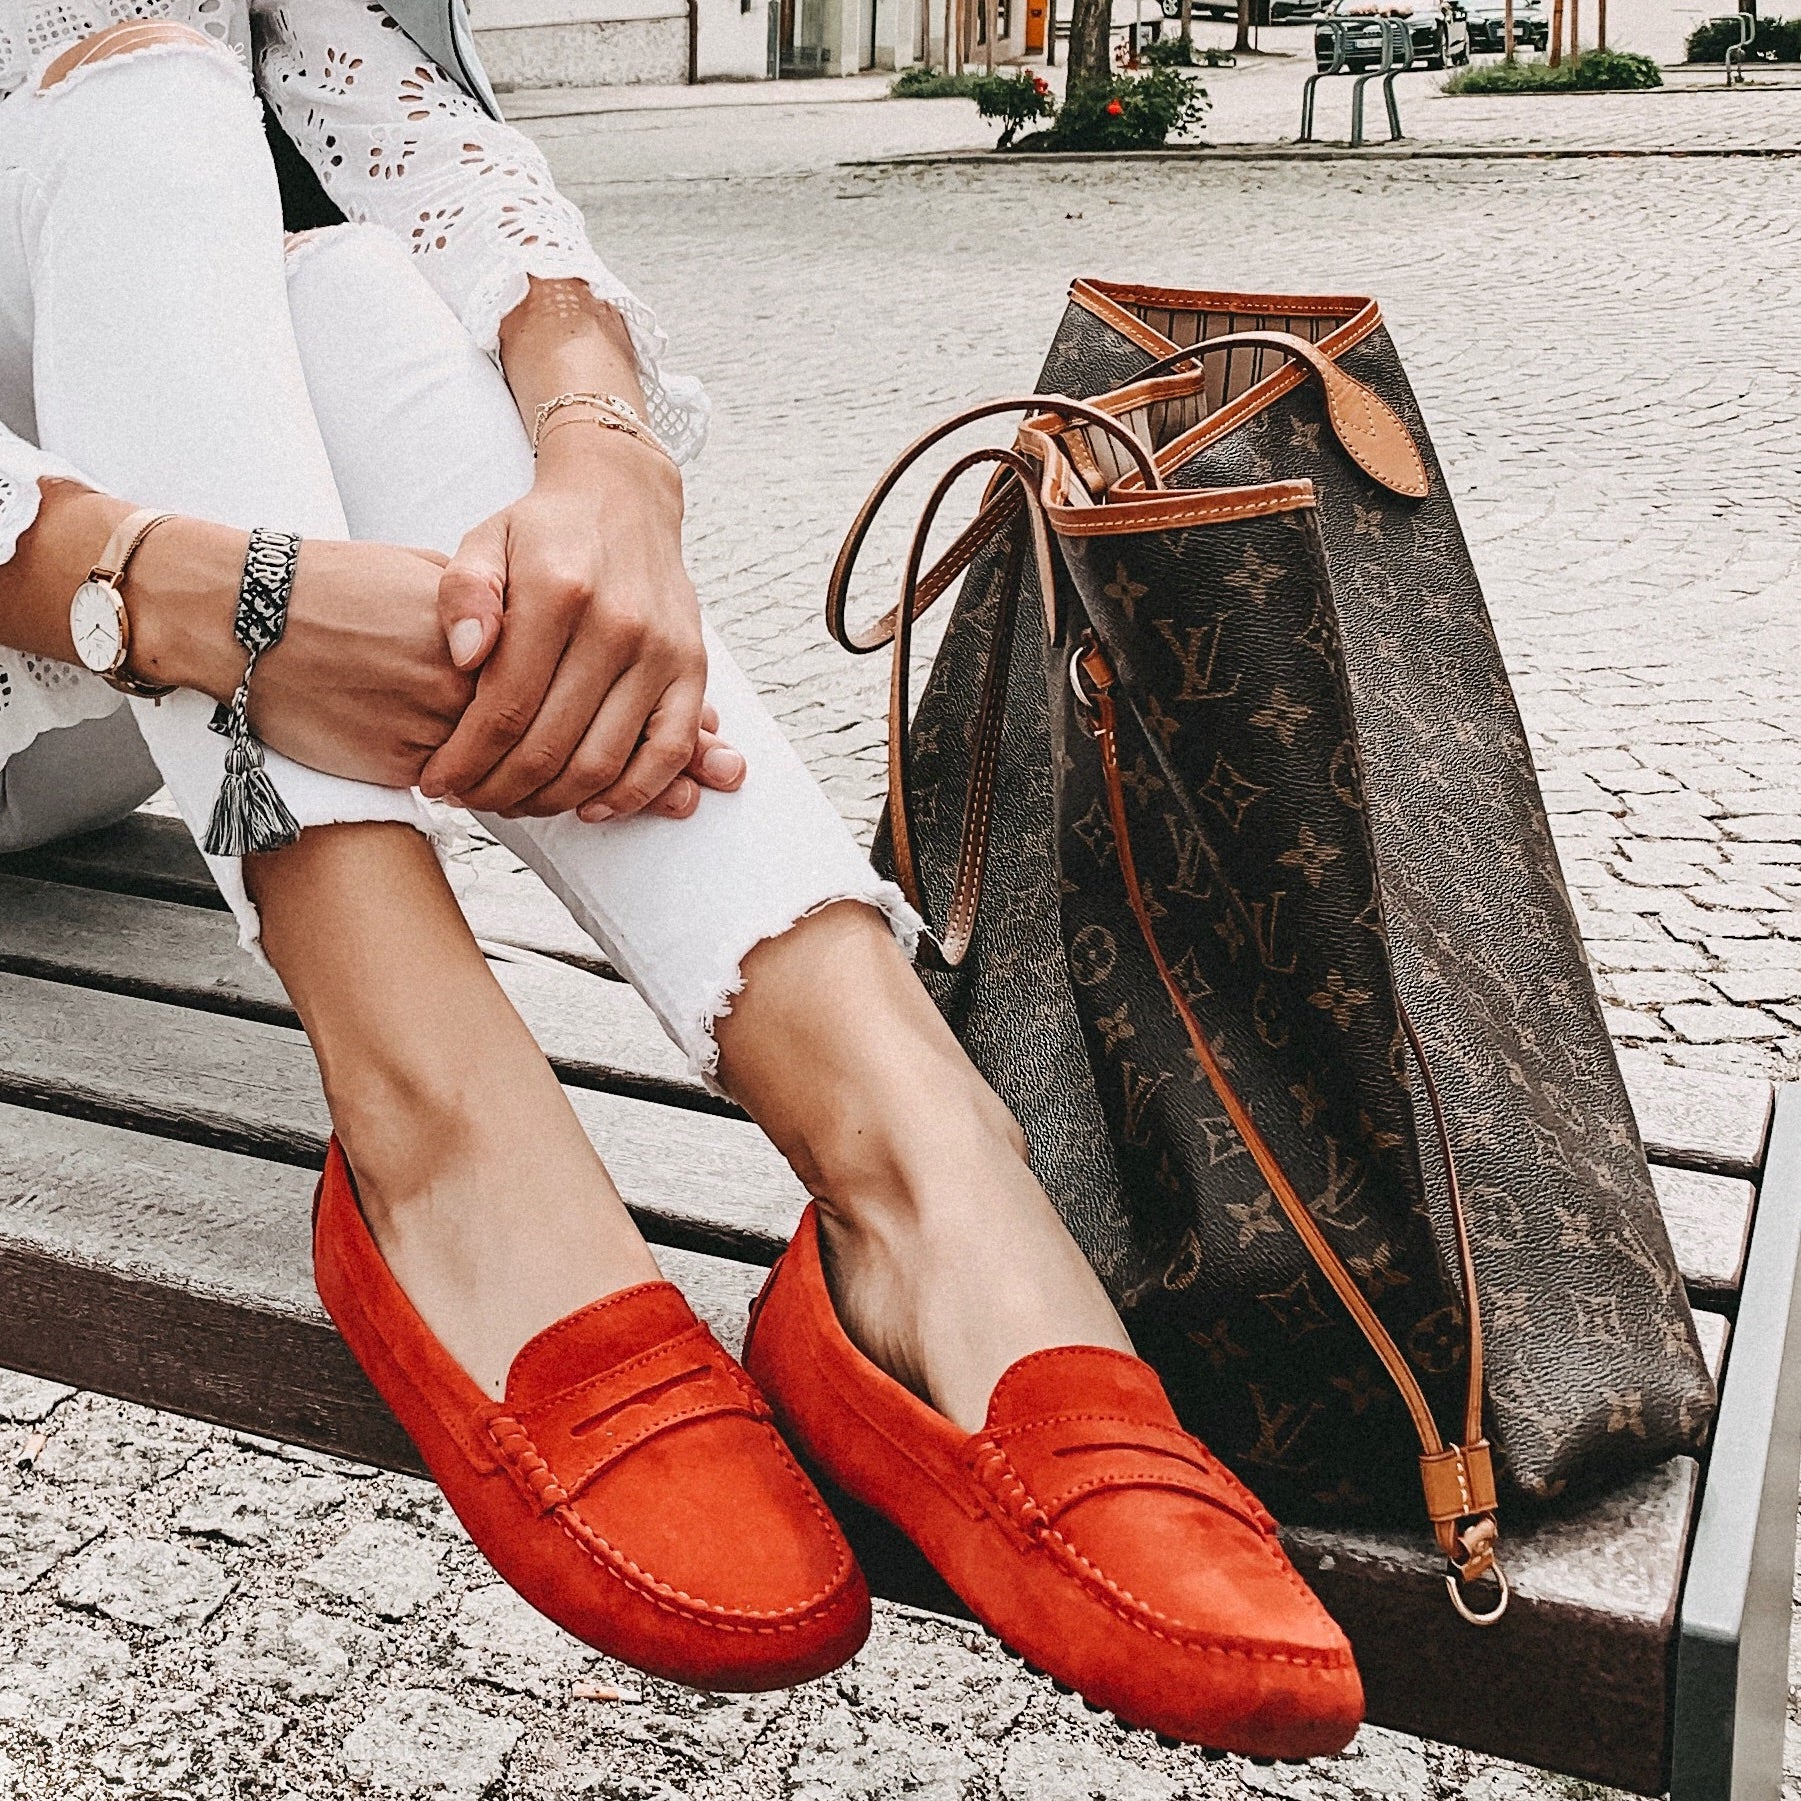 Red Suede Hugs & Co. Loafers Worn by Lea-Sophie Rehm